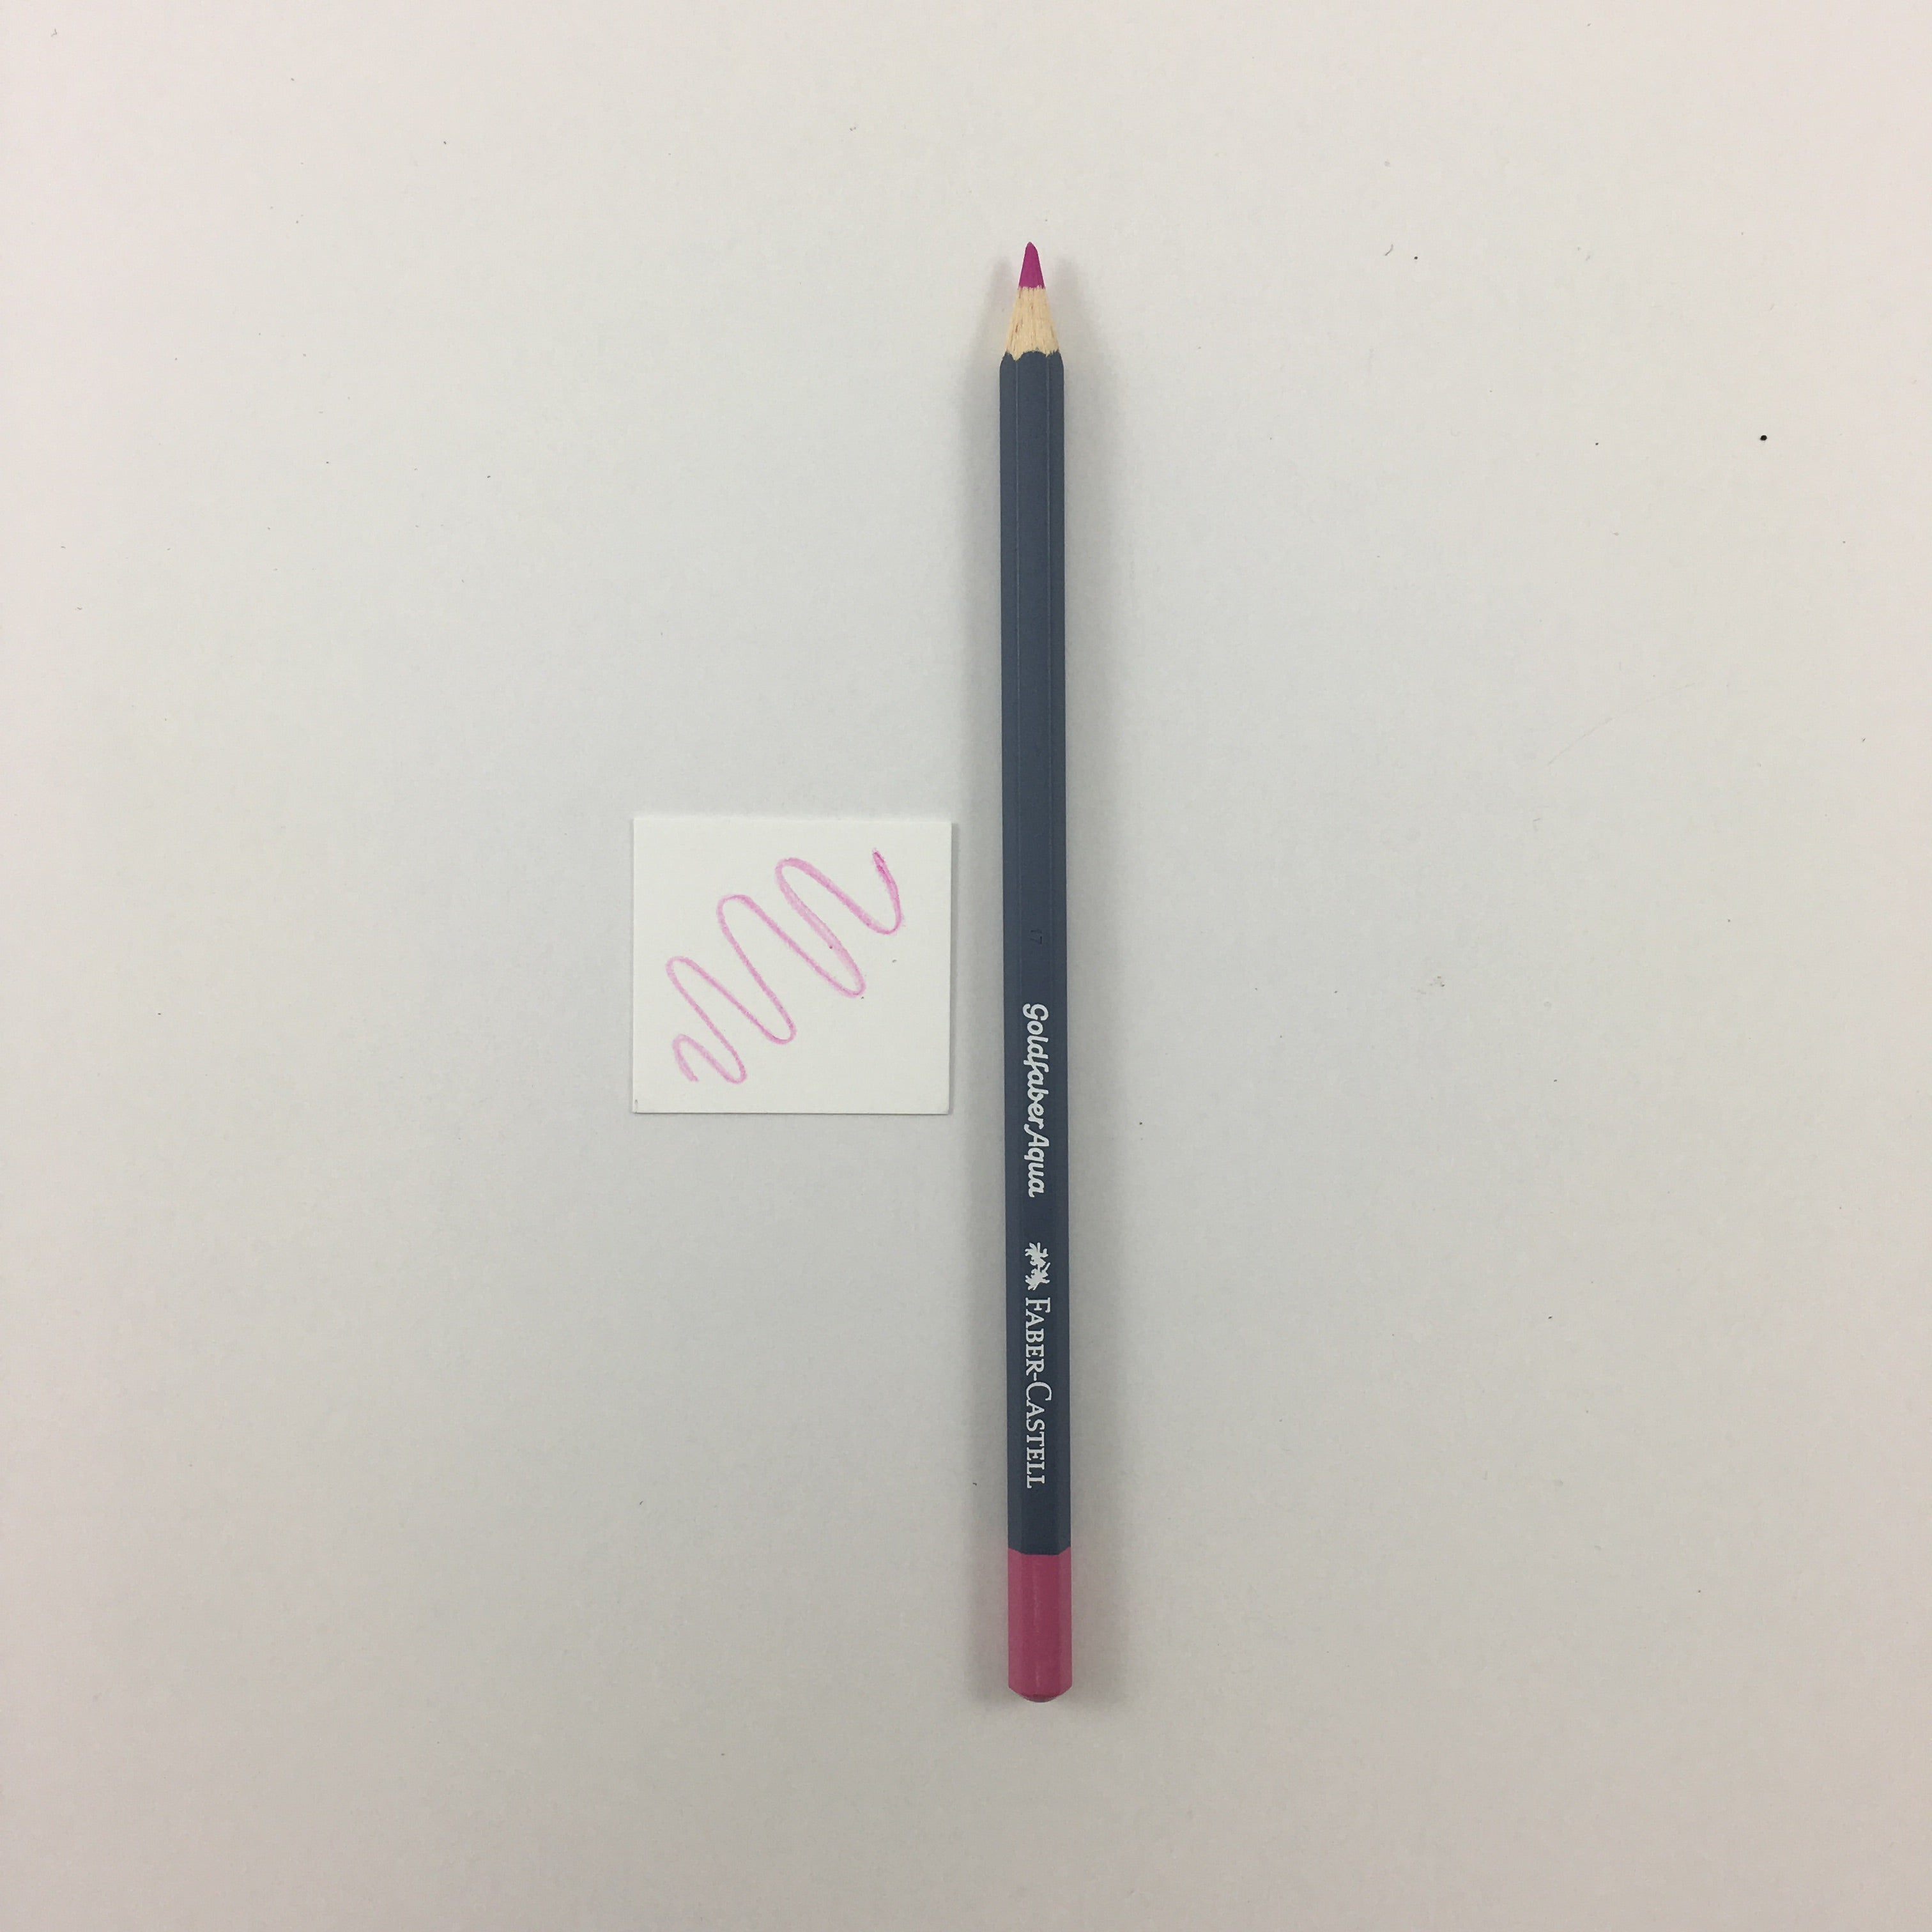 Faber-Castell Goldfaber Aqua Watercolor Pencils - Individuals - 119 - Light Magenta by Faber-Castell - K. A. Artist Shop